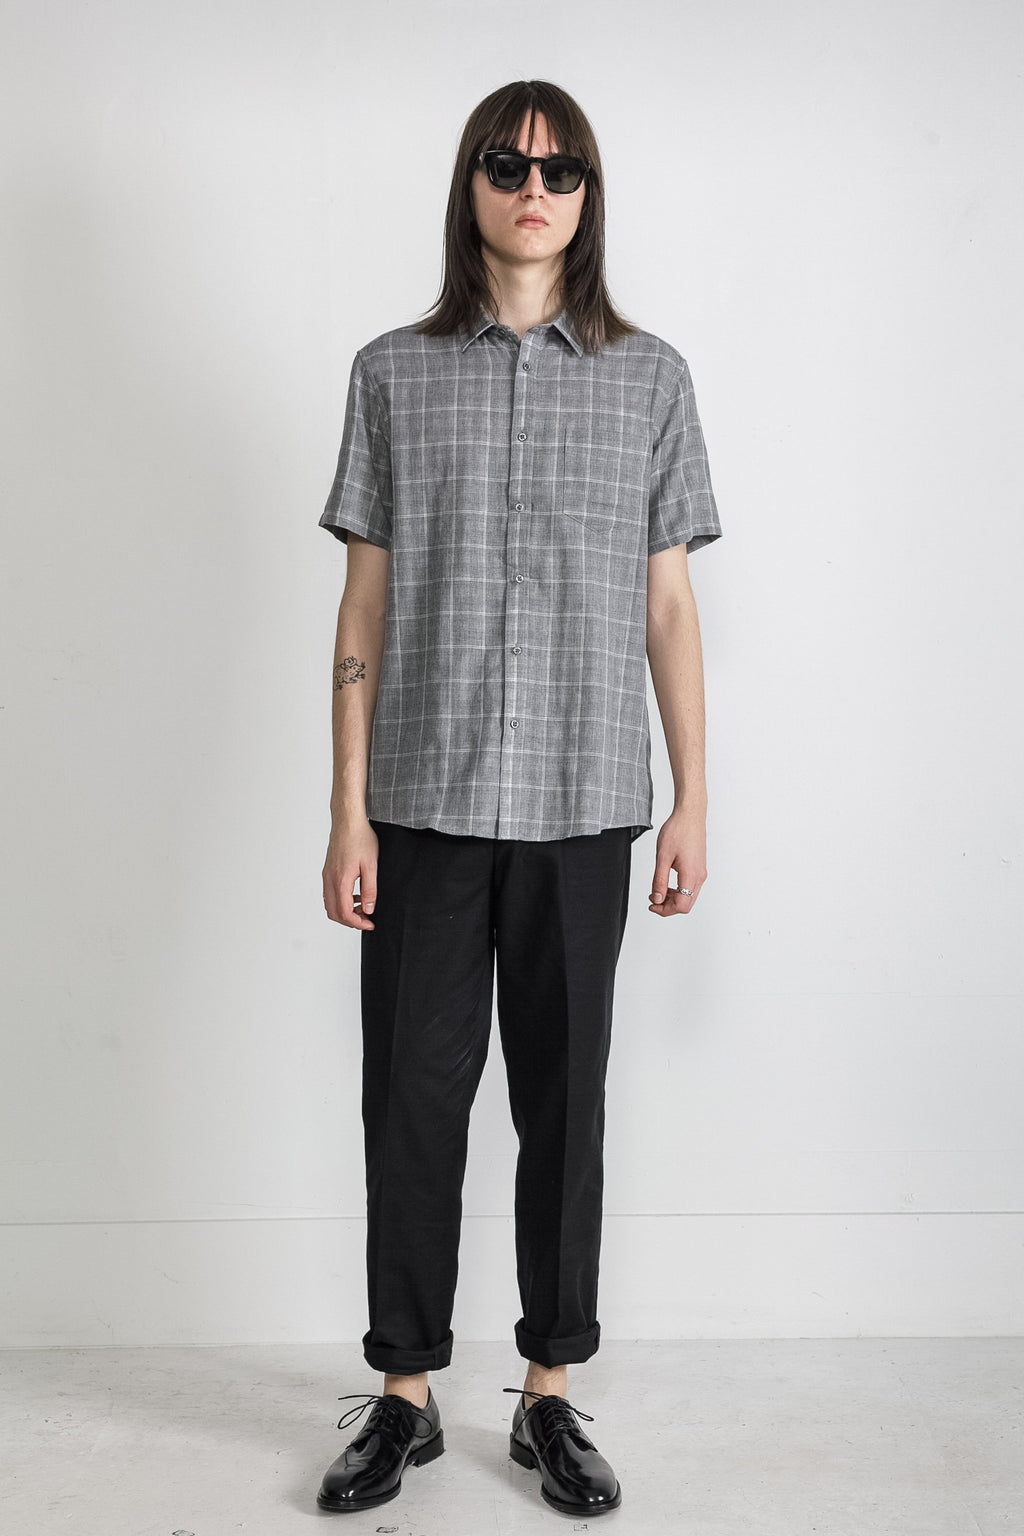 Japanese Double Face Plaid in Grey 005